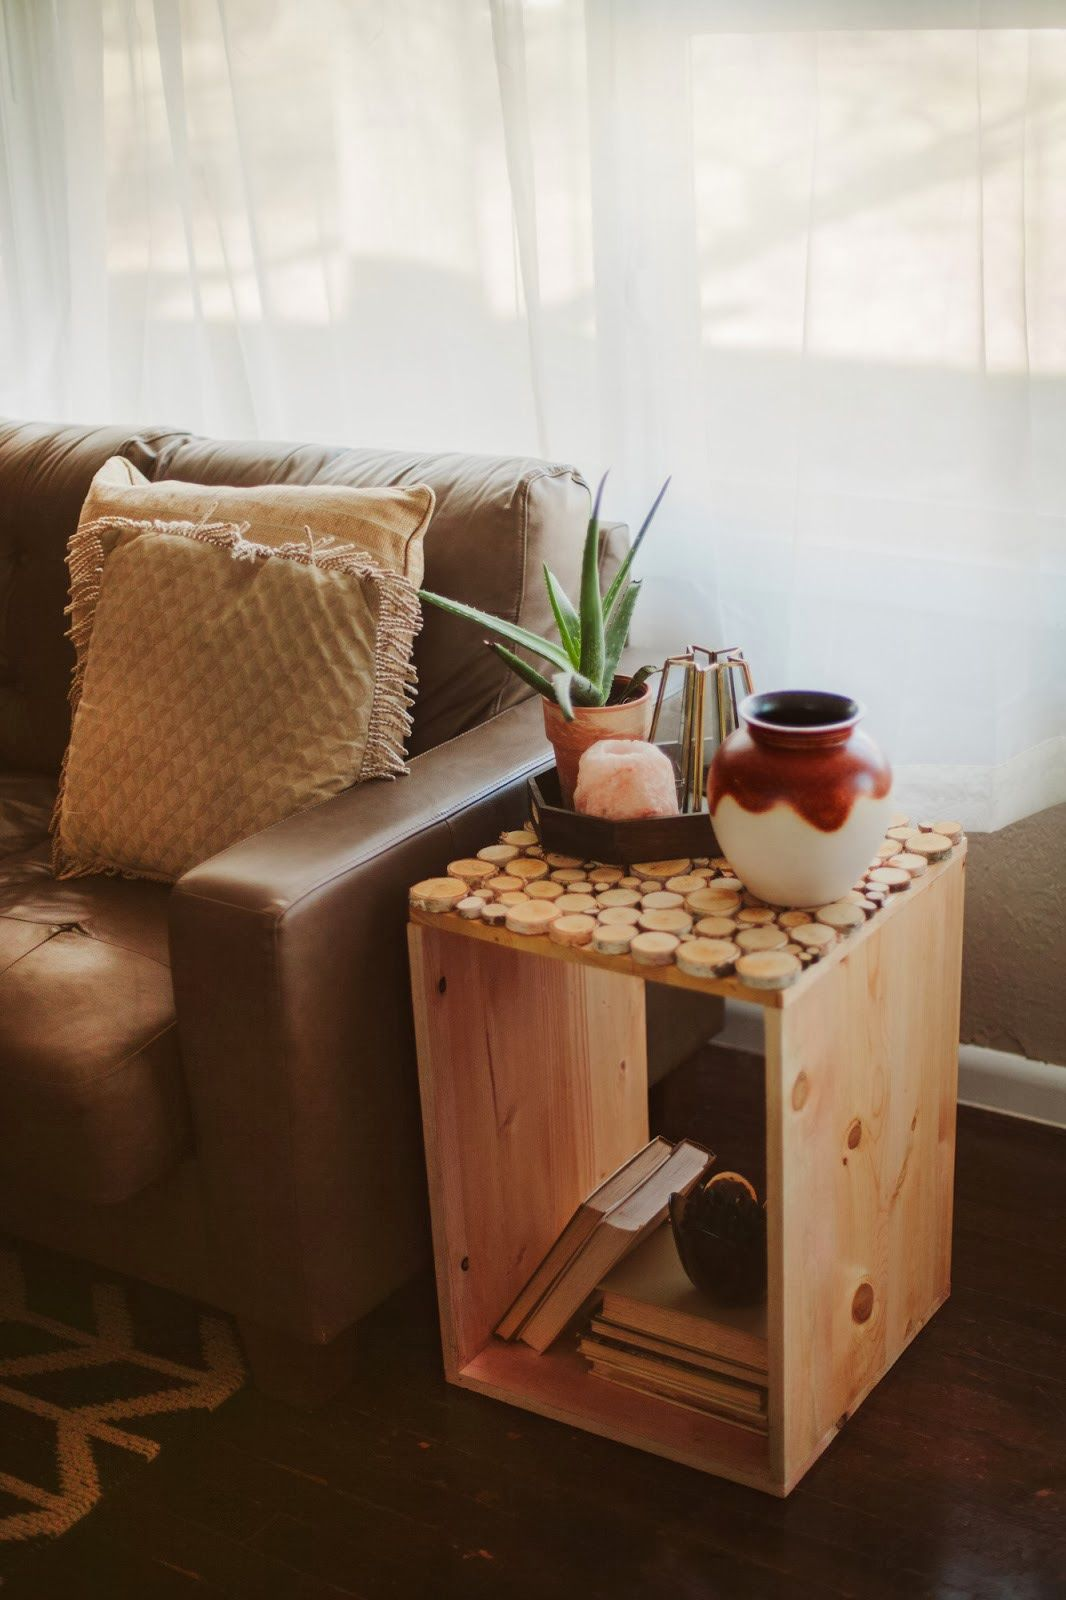 Birch Wood Table Diy Sincerely Kinsey Supplies Bullets And Shopping